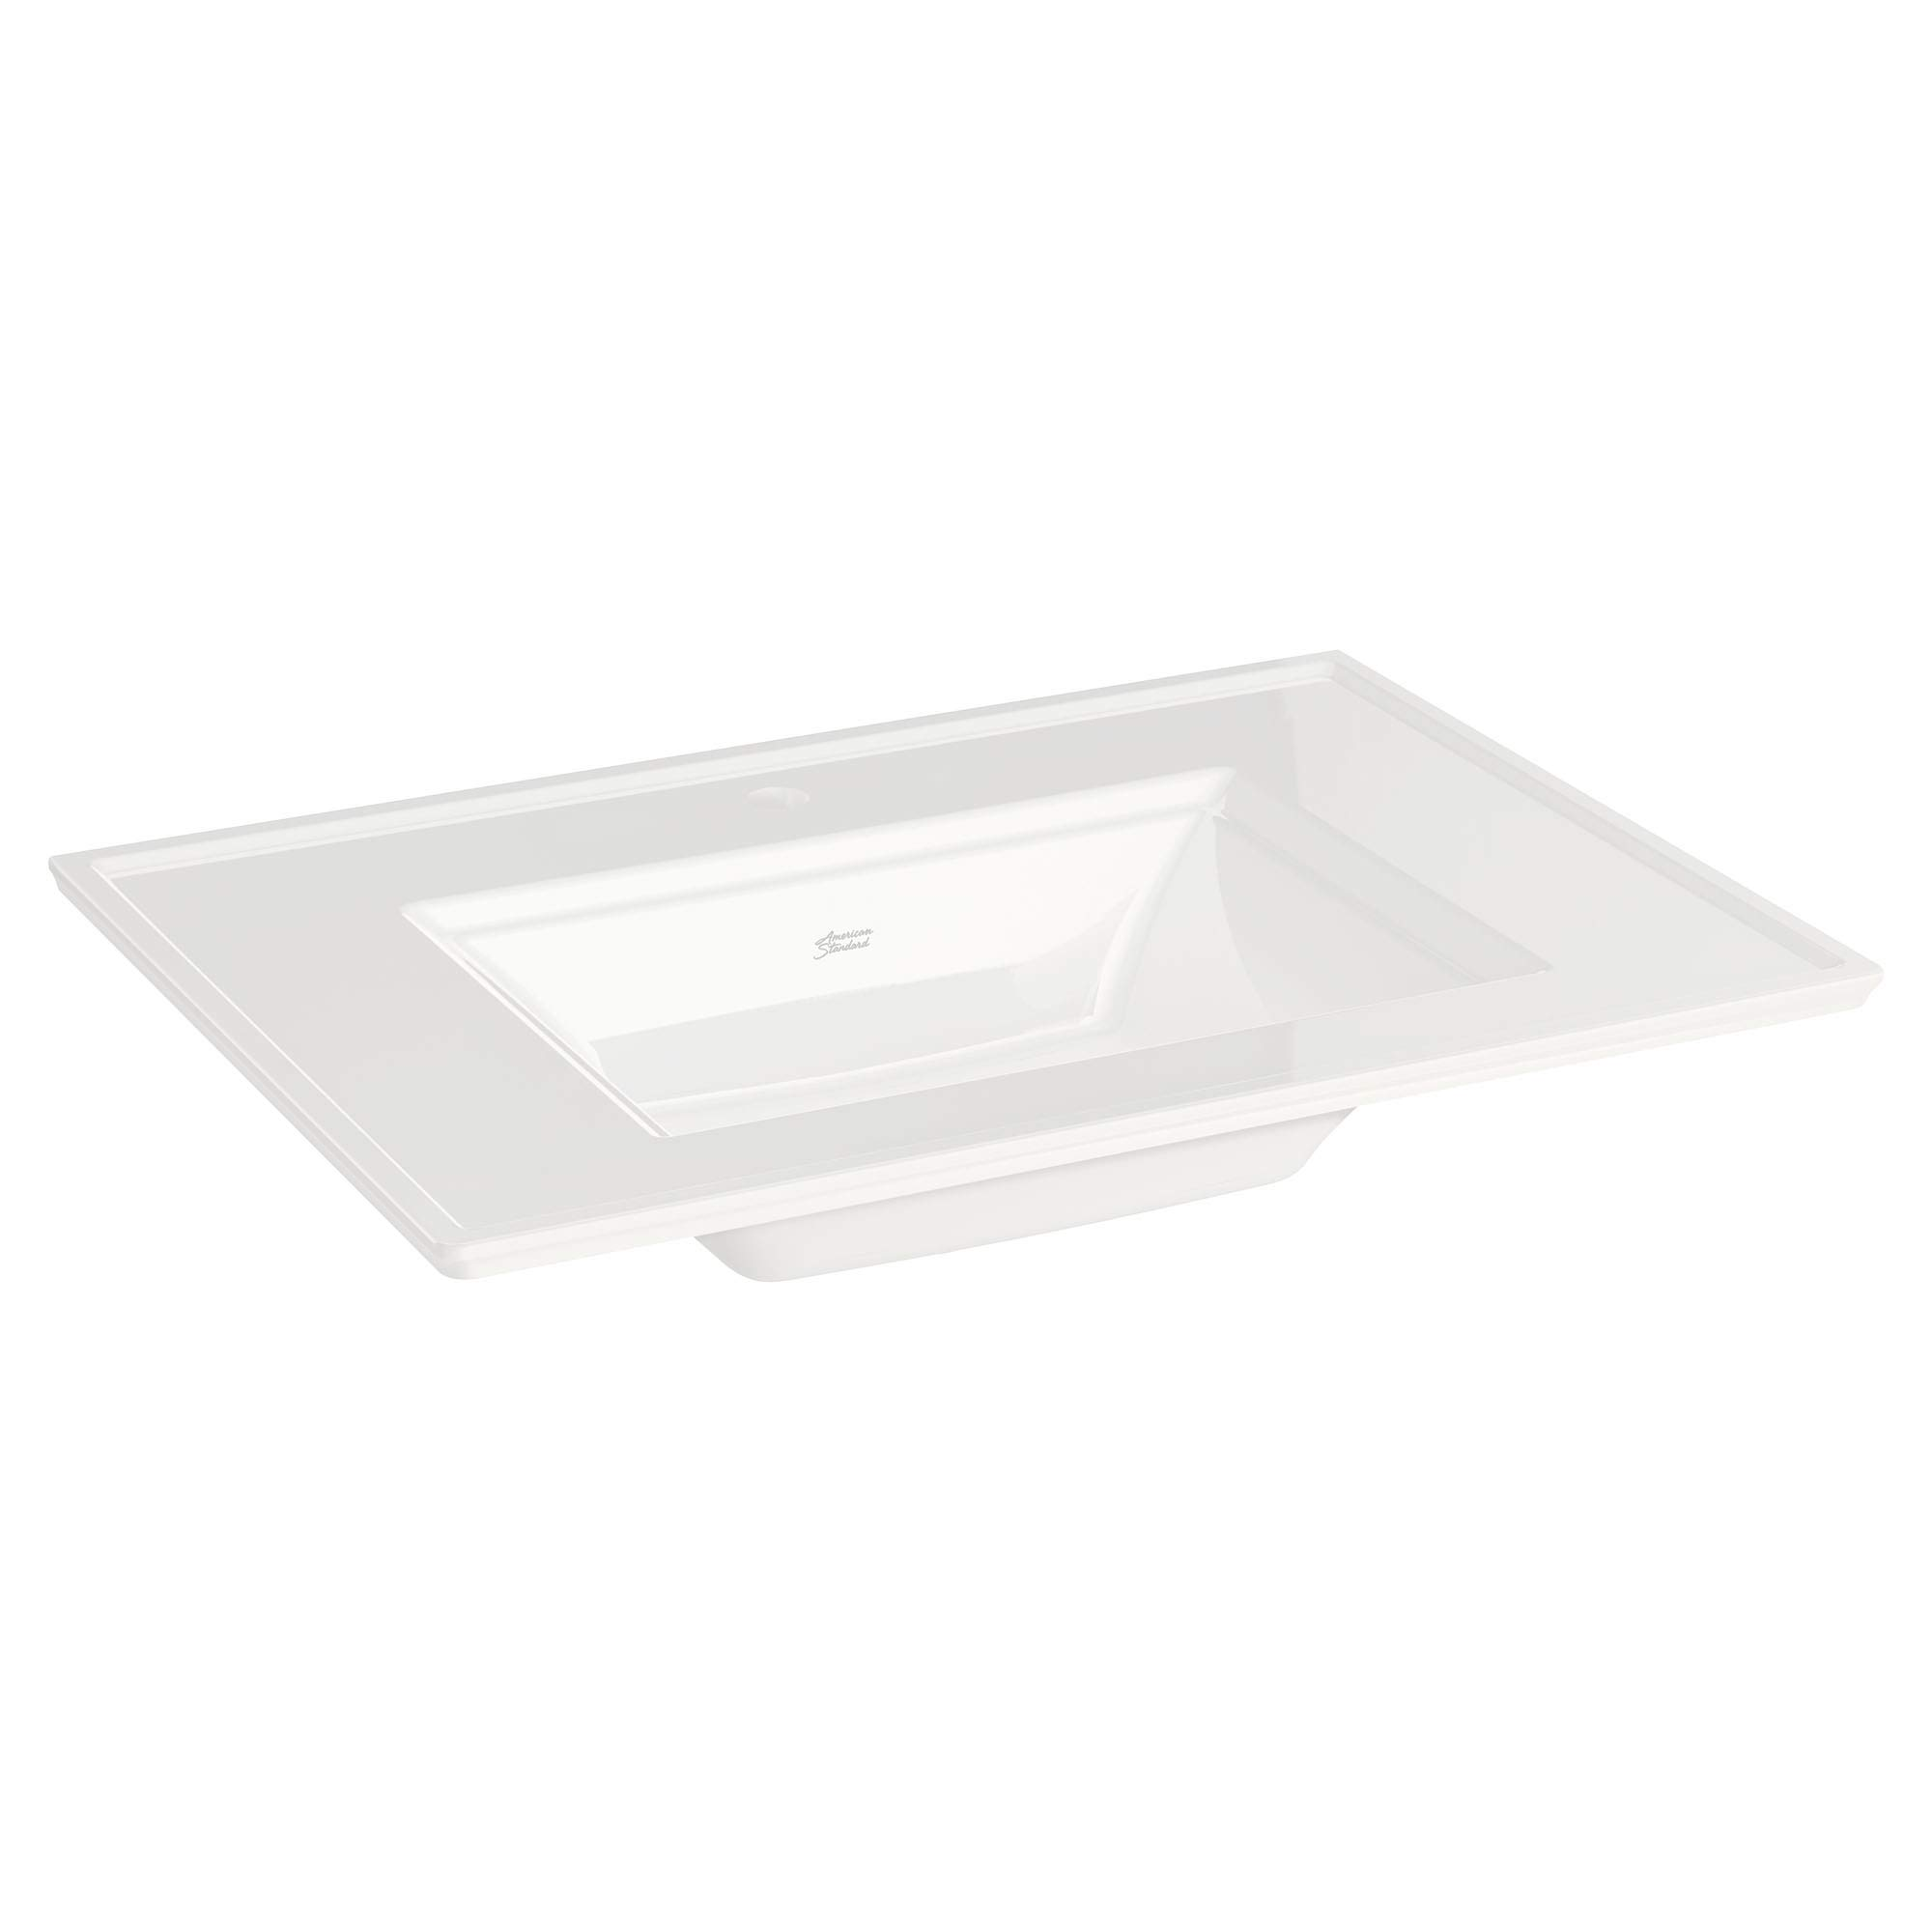 American Standard 0298001.020 Town Square S Vanity Top- Center Hole Only Only, White